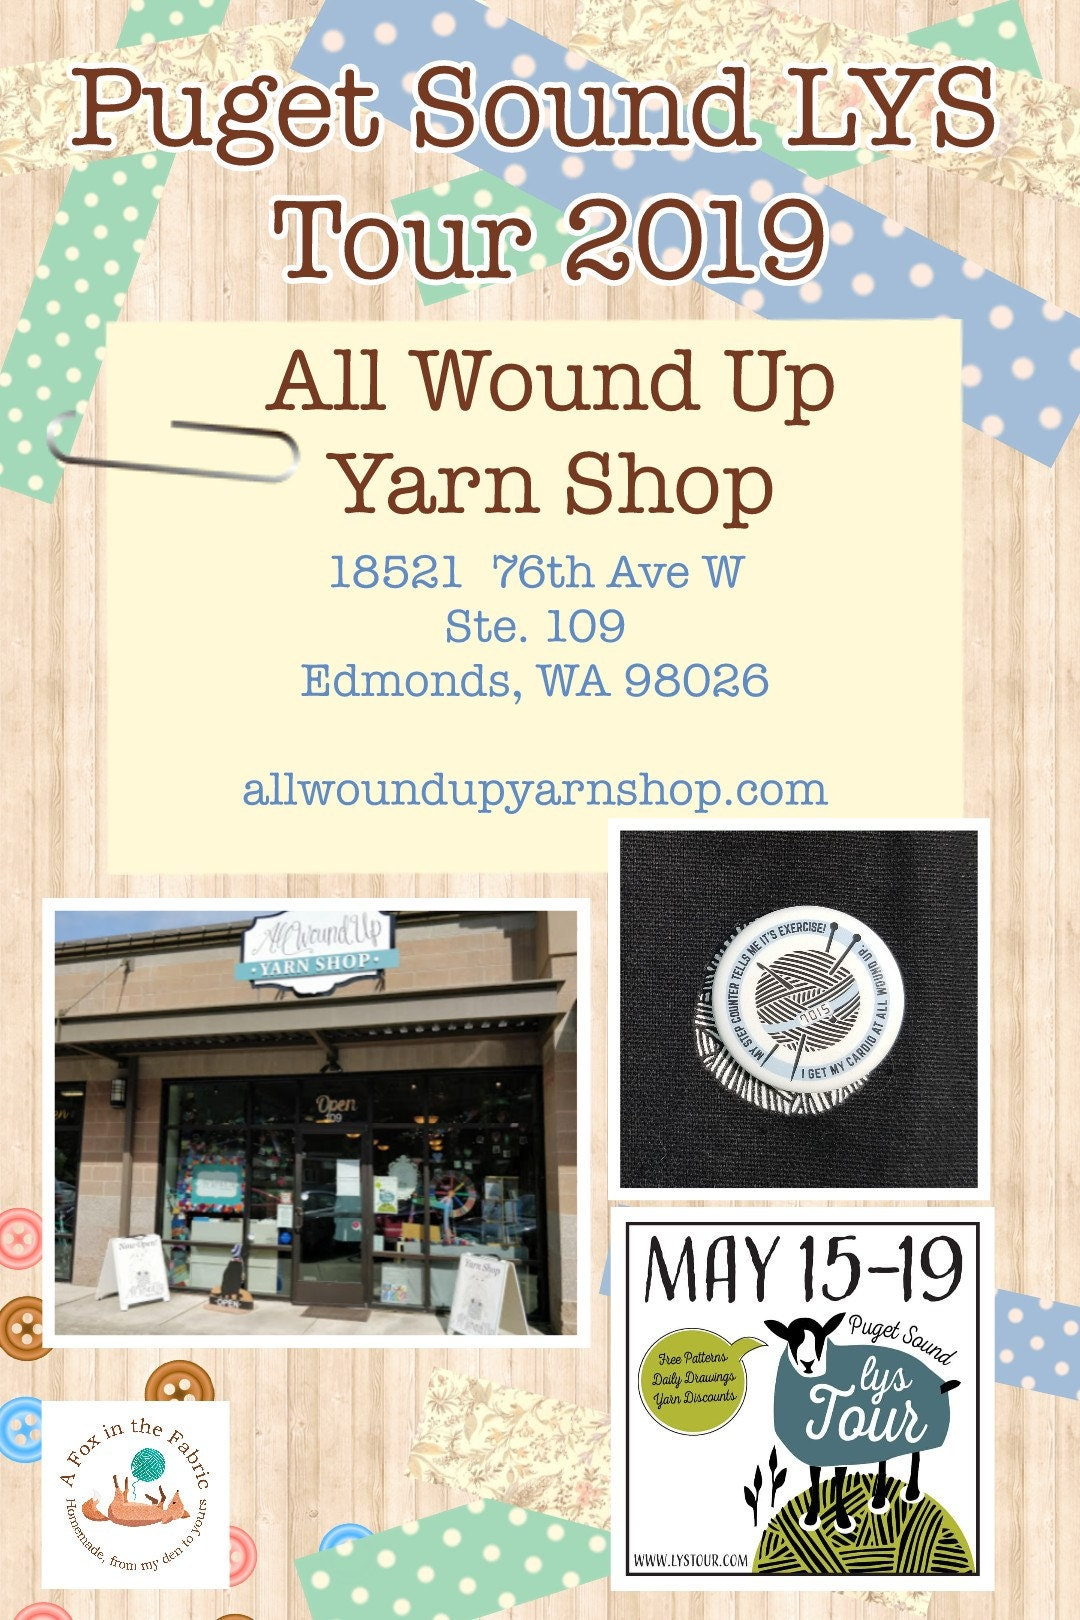 Puget Sound LYS Tour 2019 All Wound Up Yarn Shop